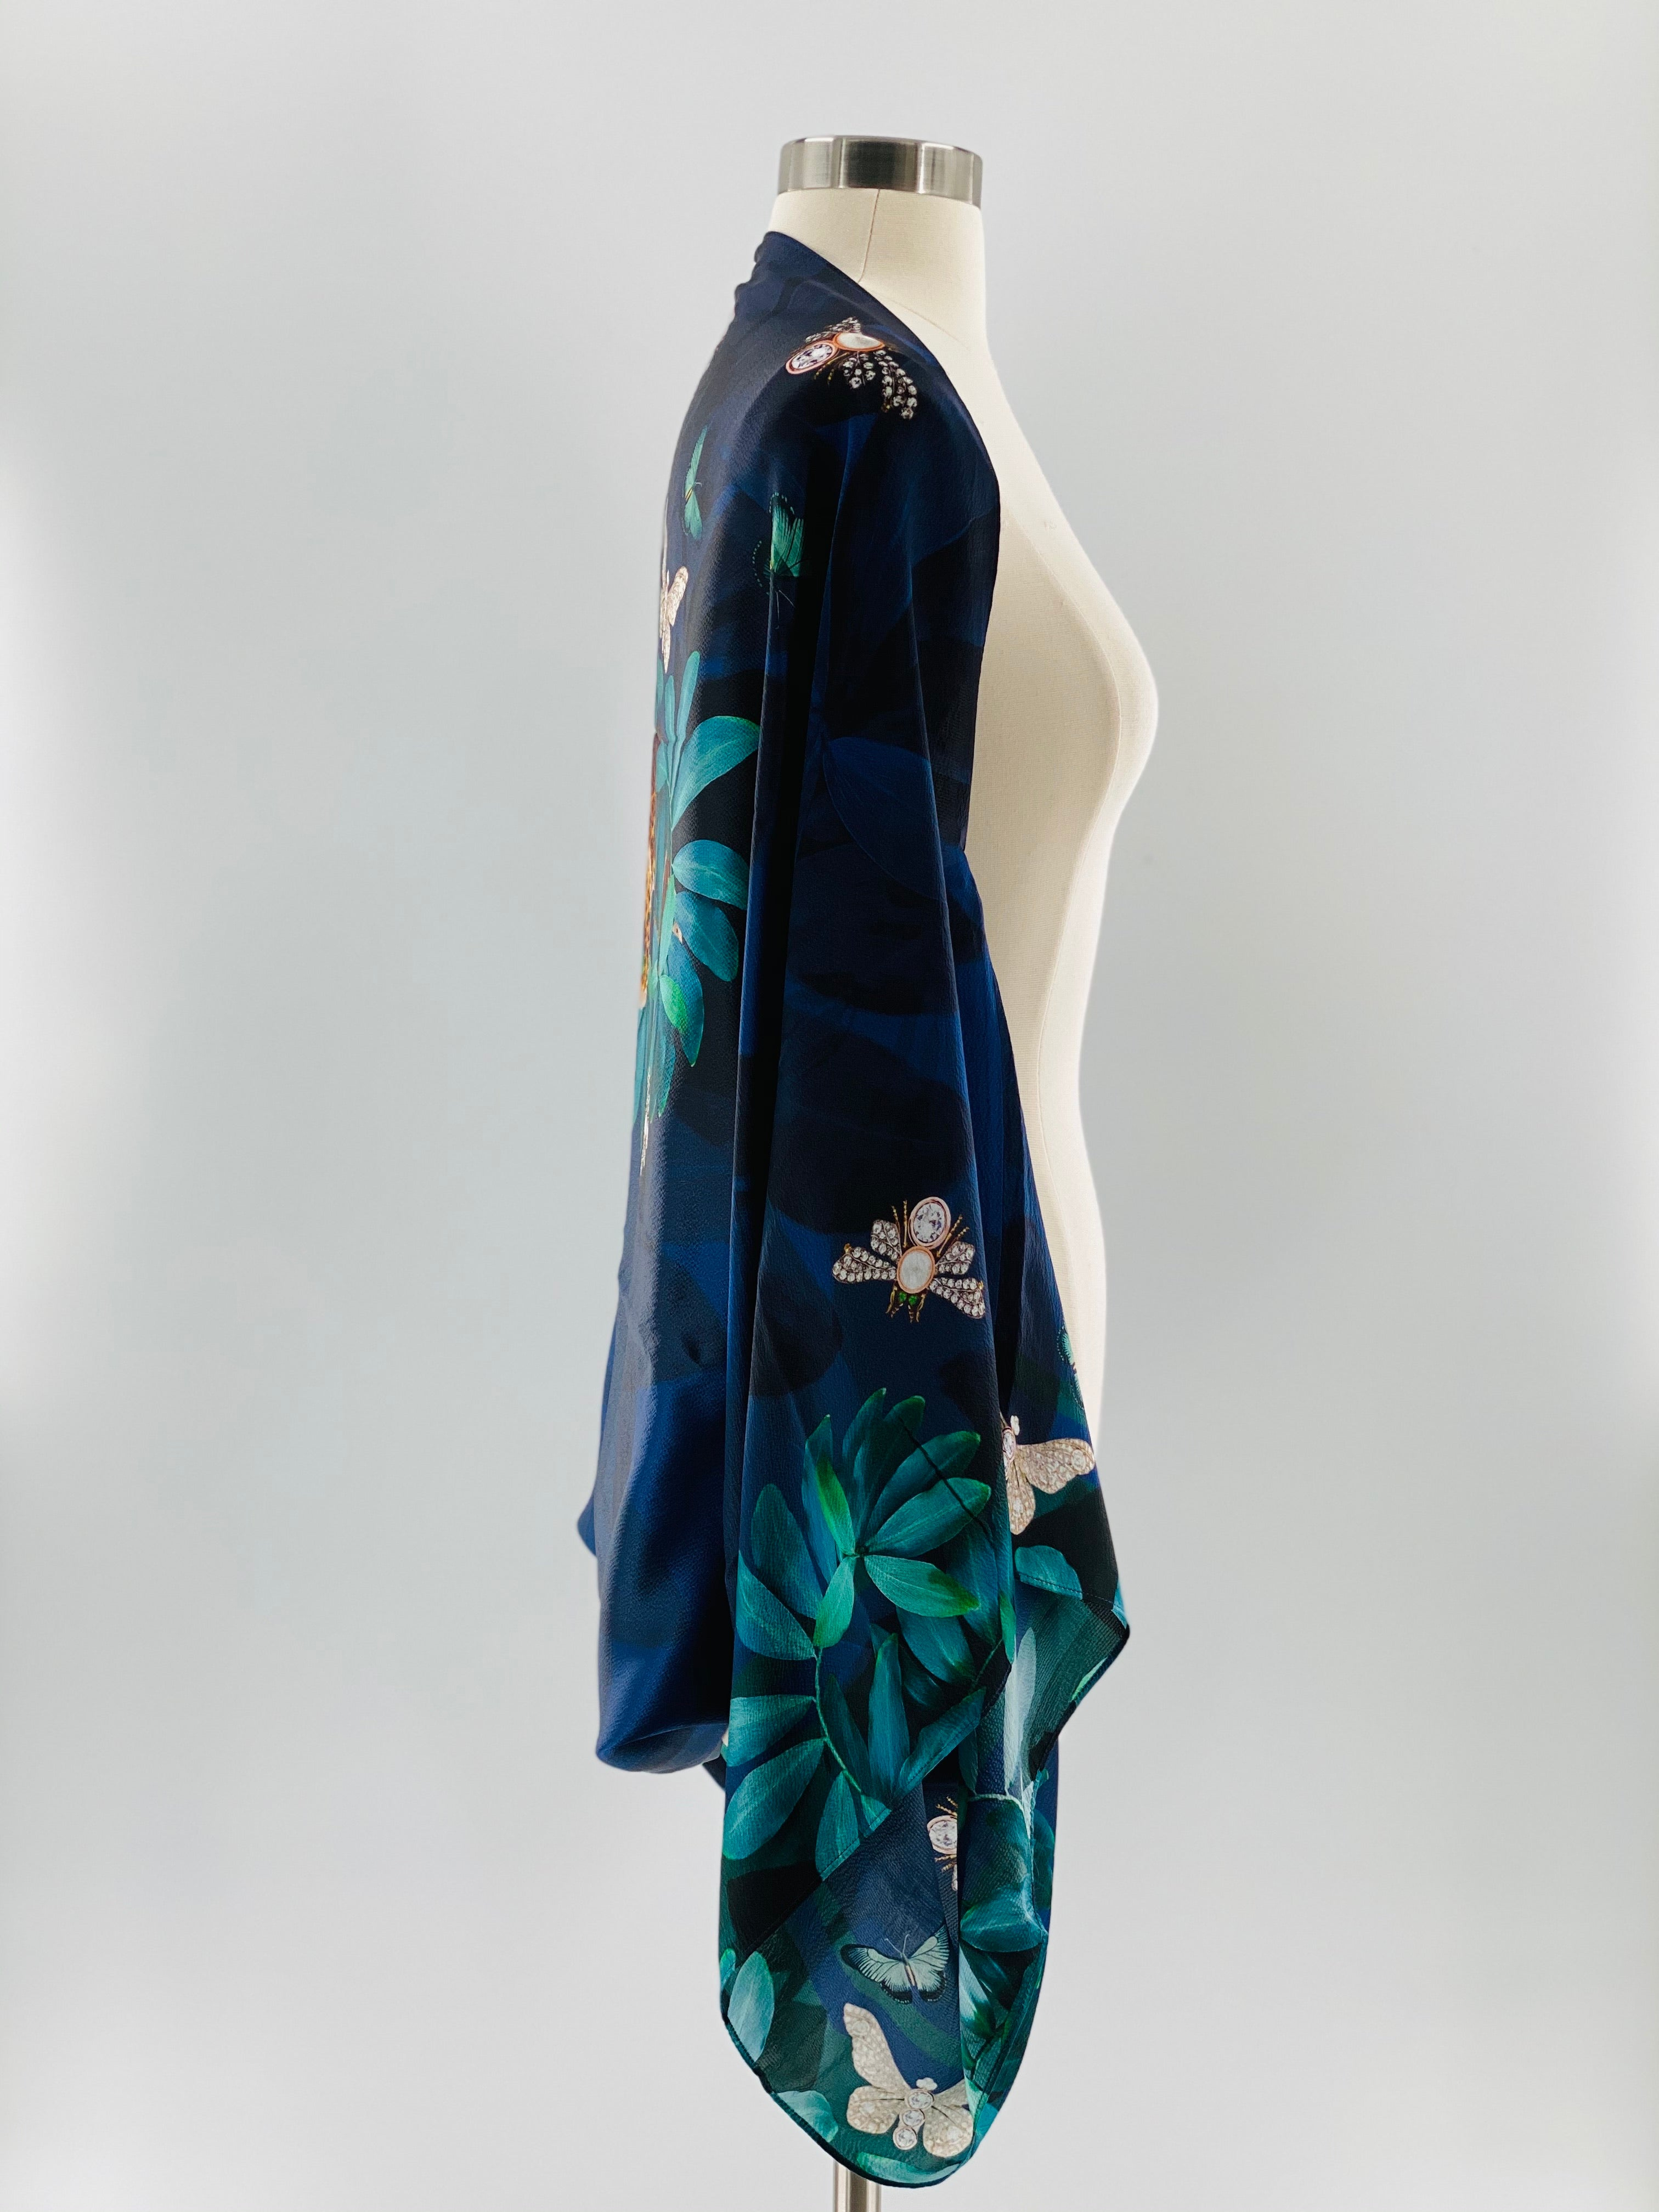 Ted Baker Houdini Silk Cape Scarf, One size Fits women's Sizes 4-14